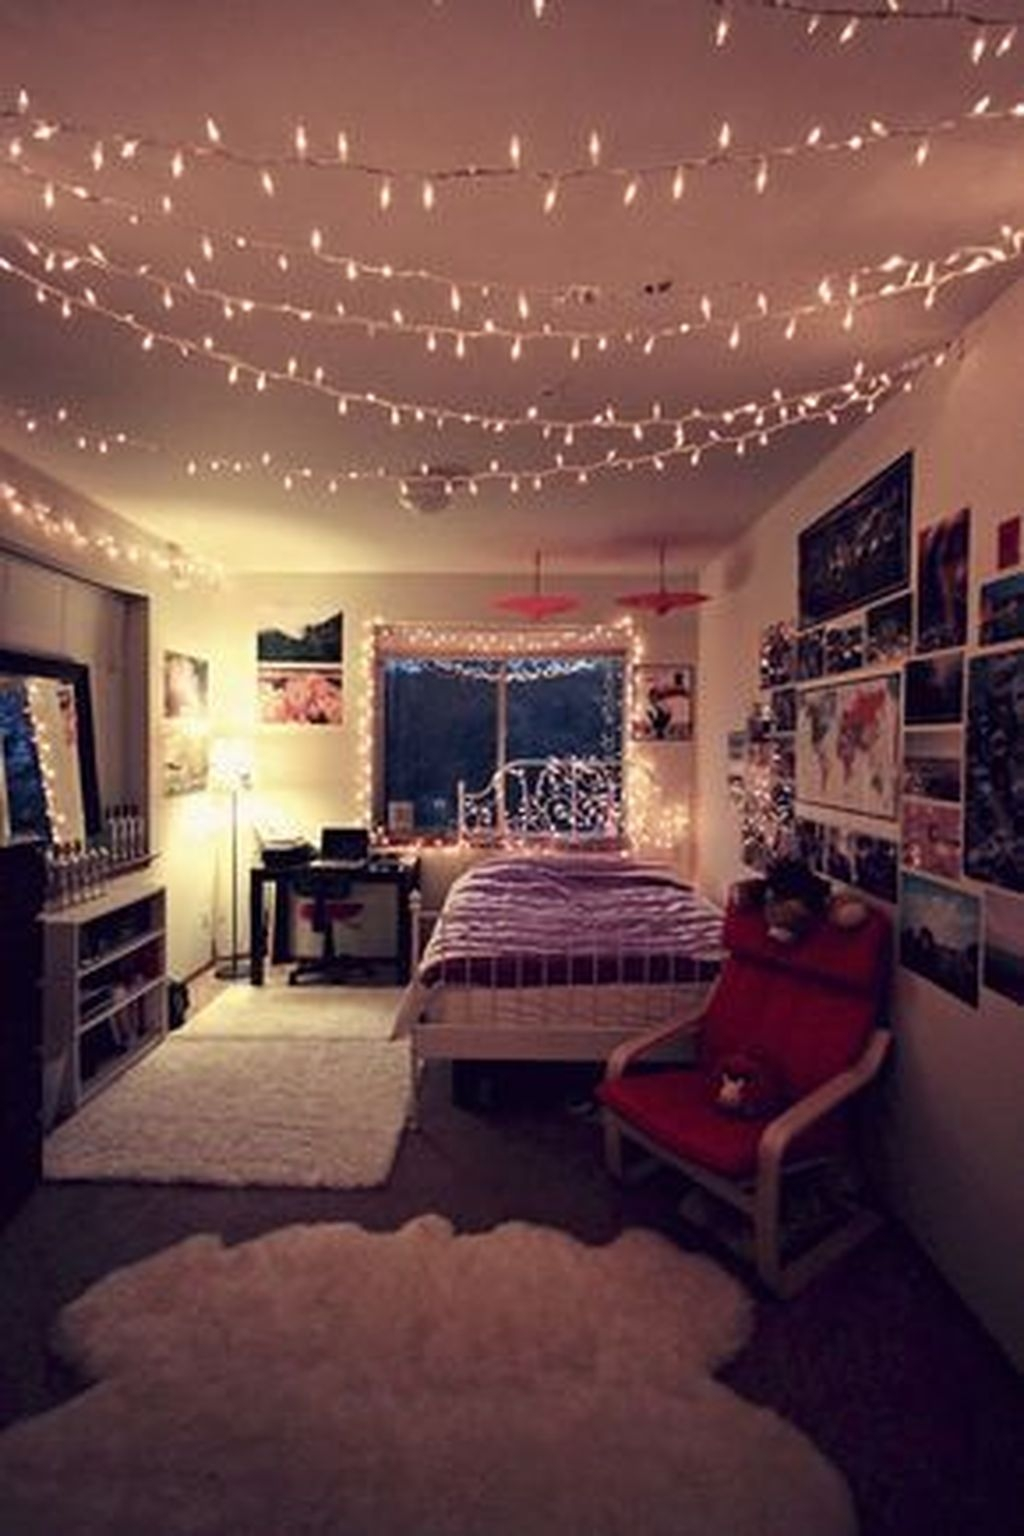 Easy Diy College Apartment Decorating Ideas On A Budget 10